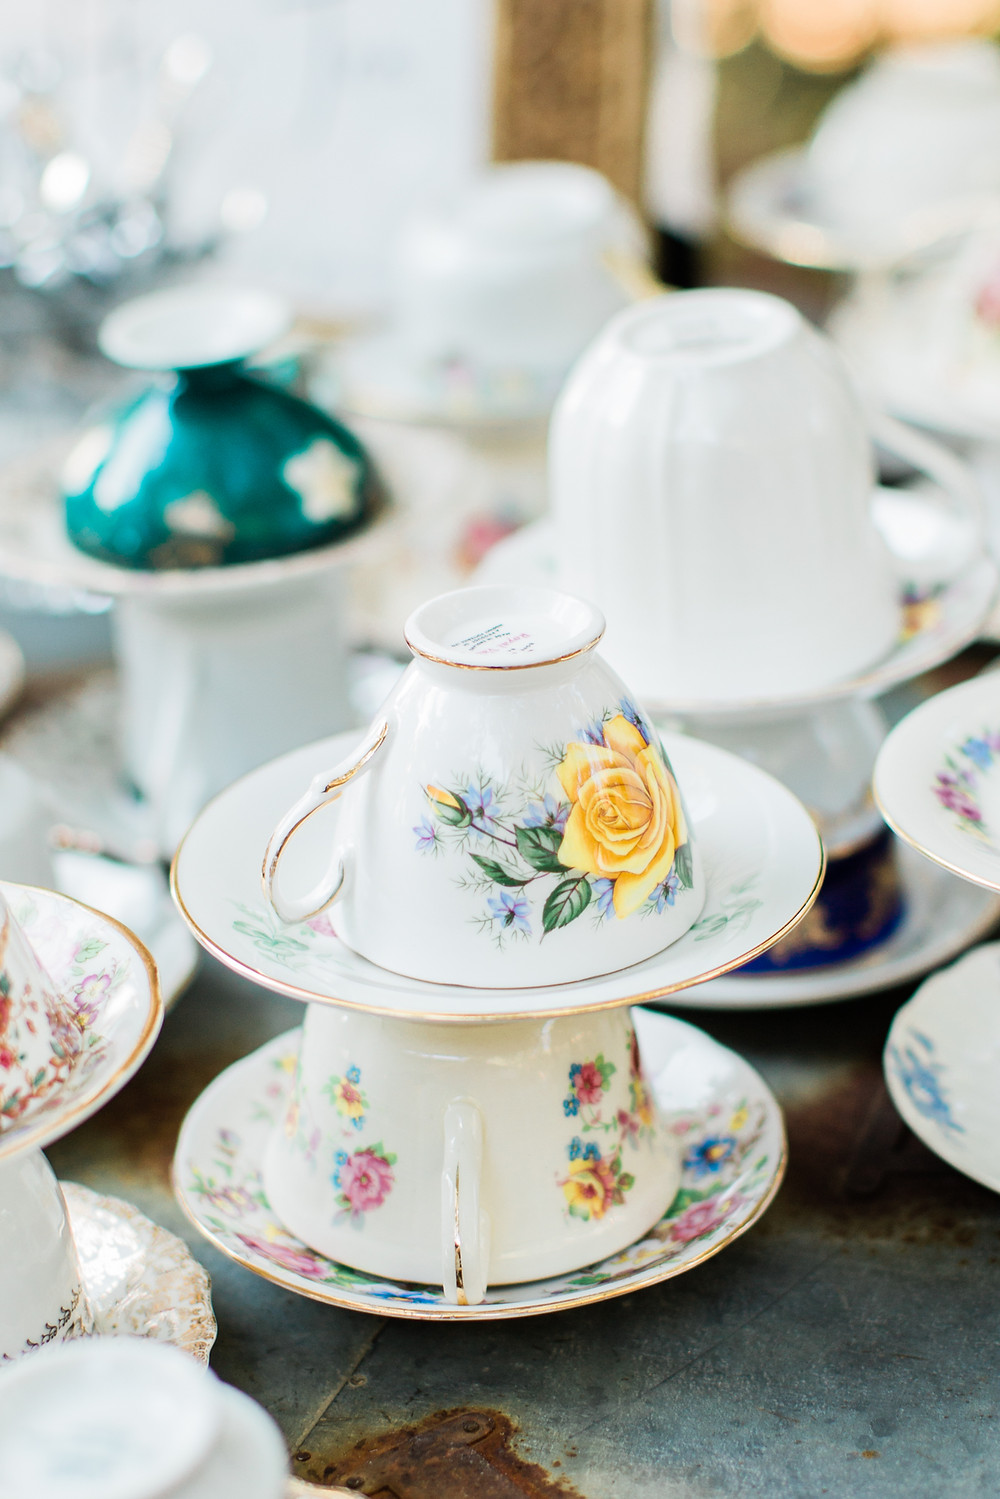 Mis-matched tea cups and saucers for dessert.